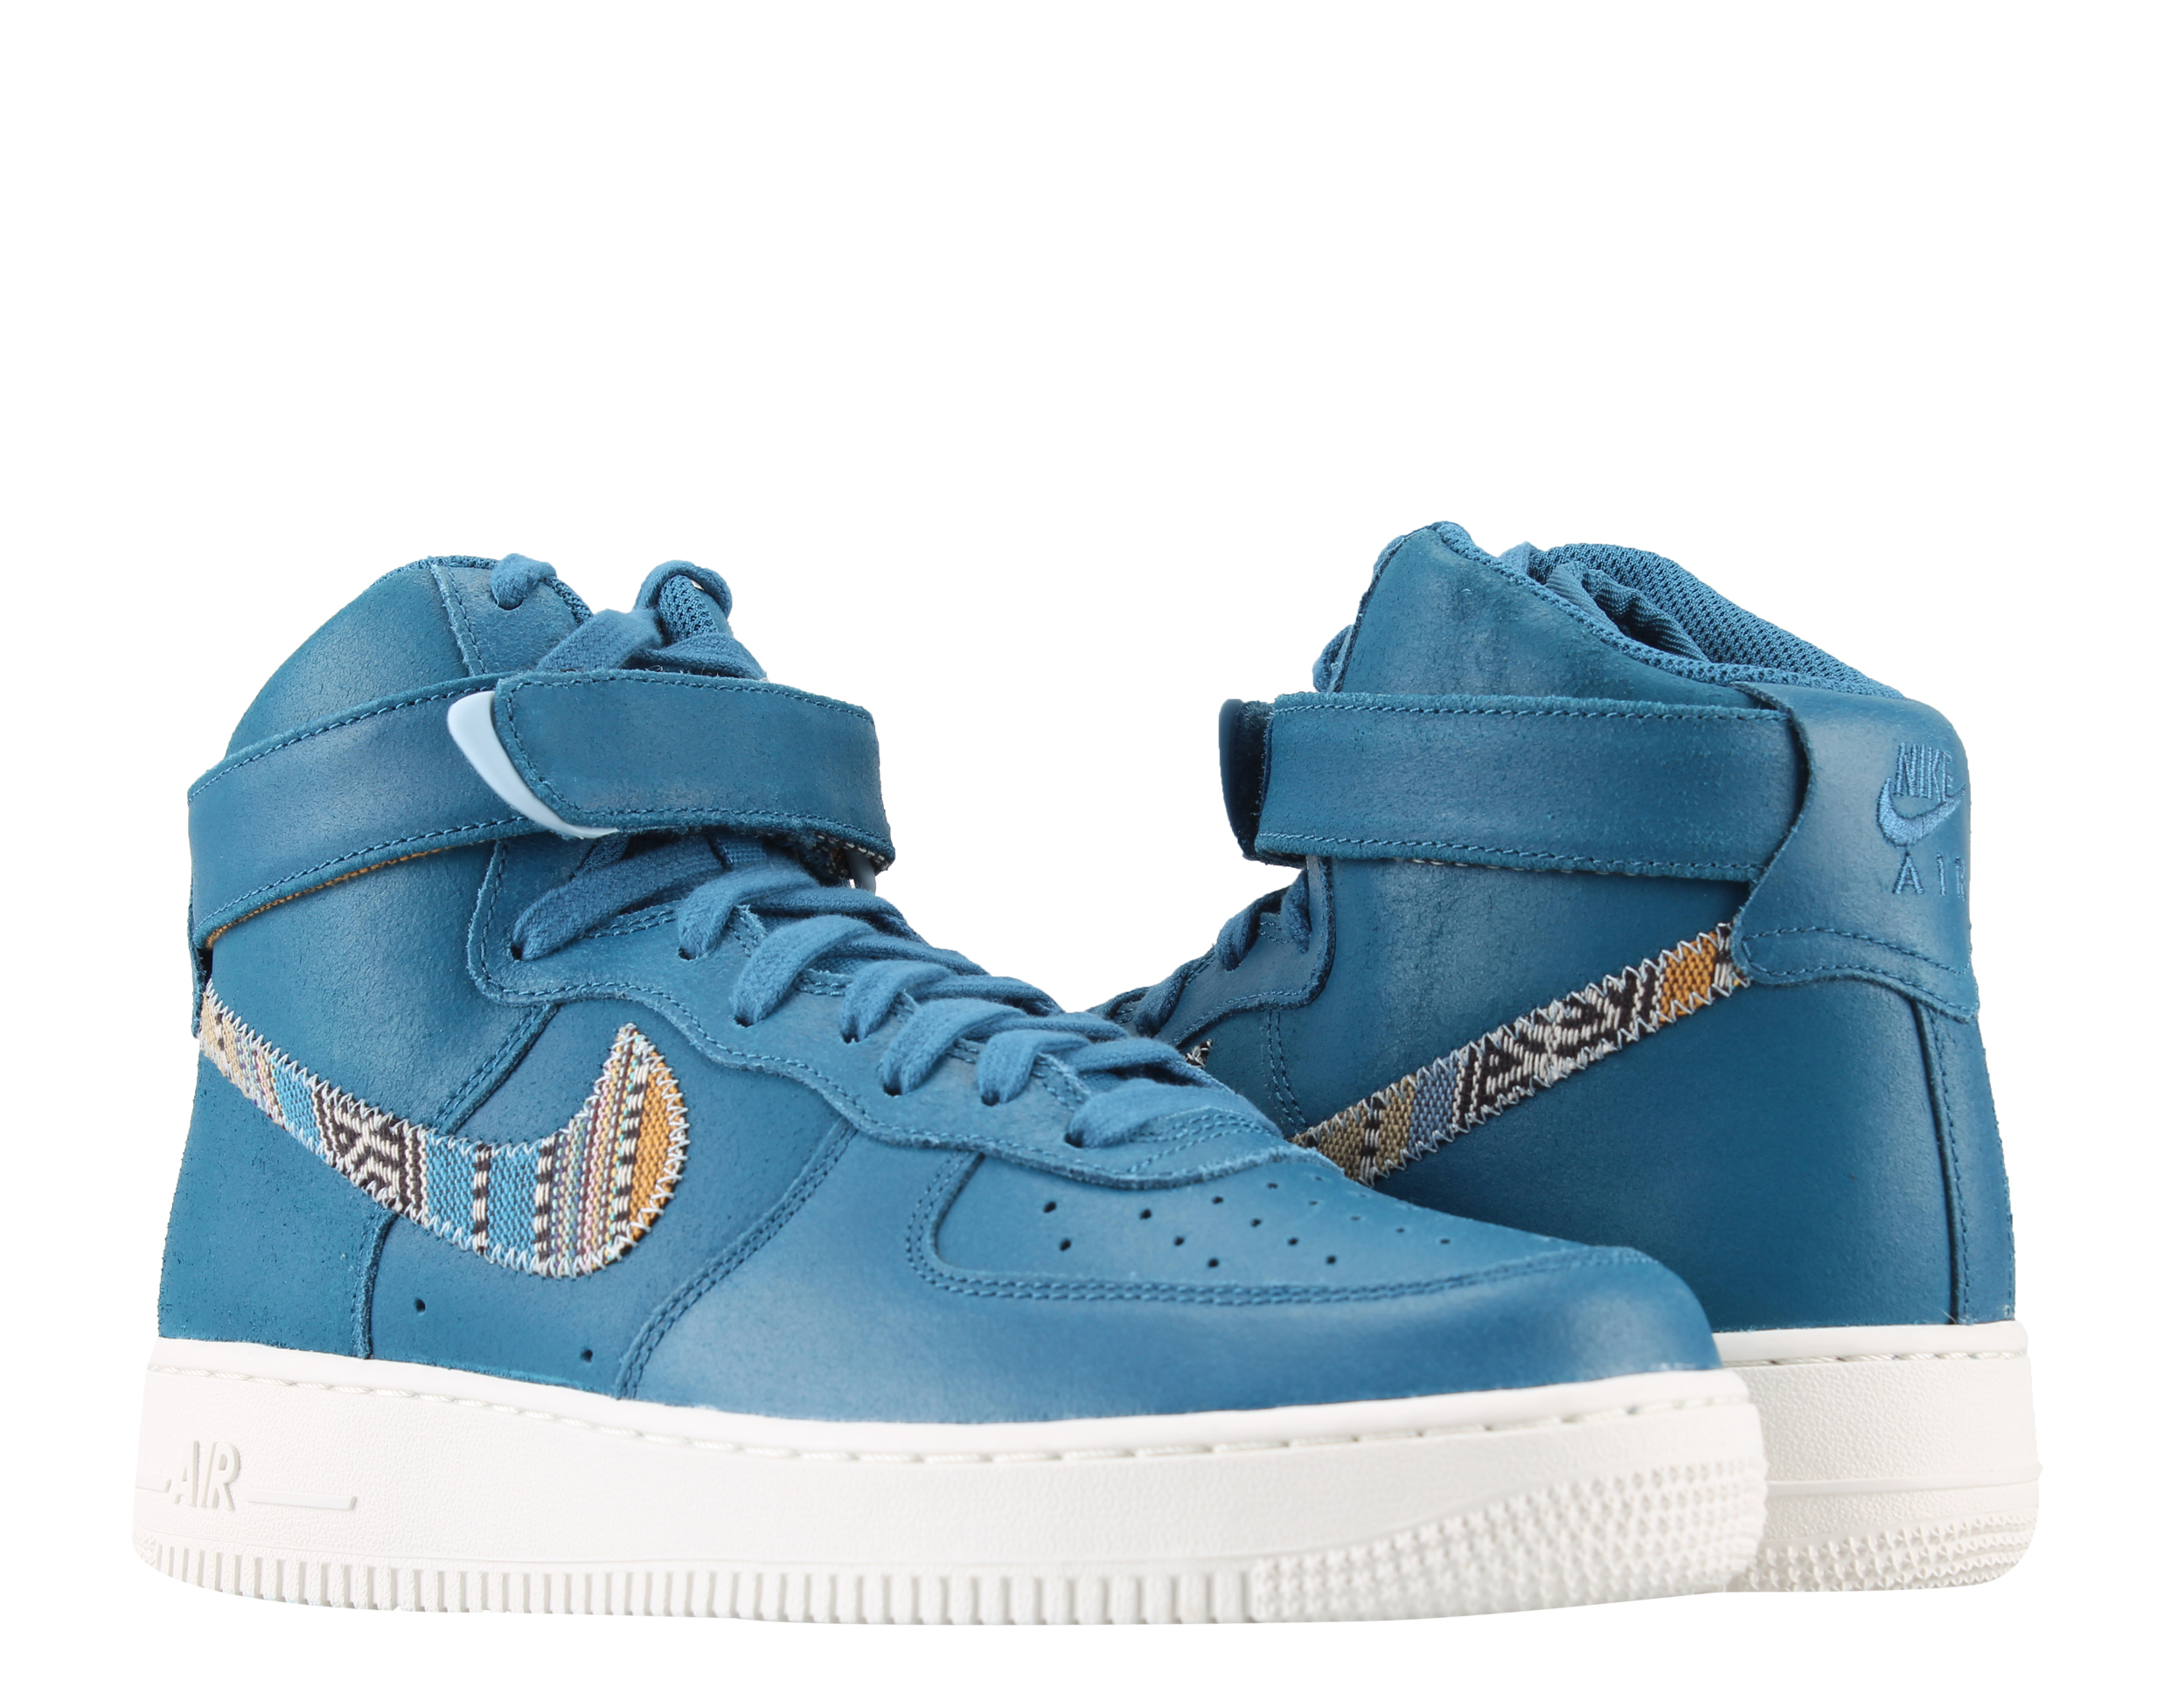 Nike Air Force 1 High '07 LV8 Industrial Blue Men's Basketball Shoes 806403-402